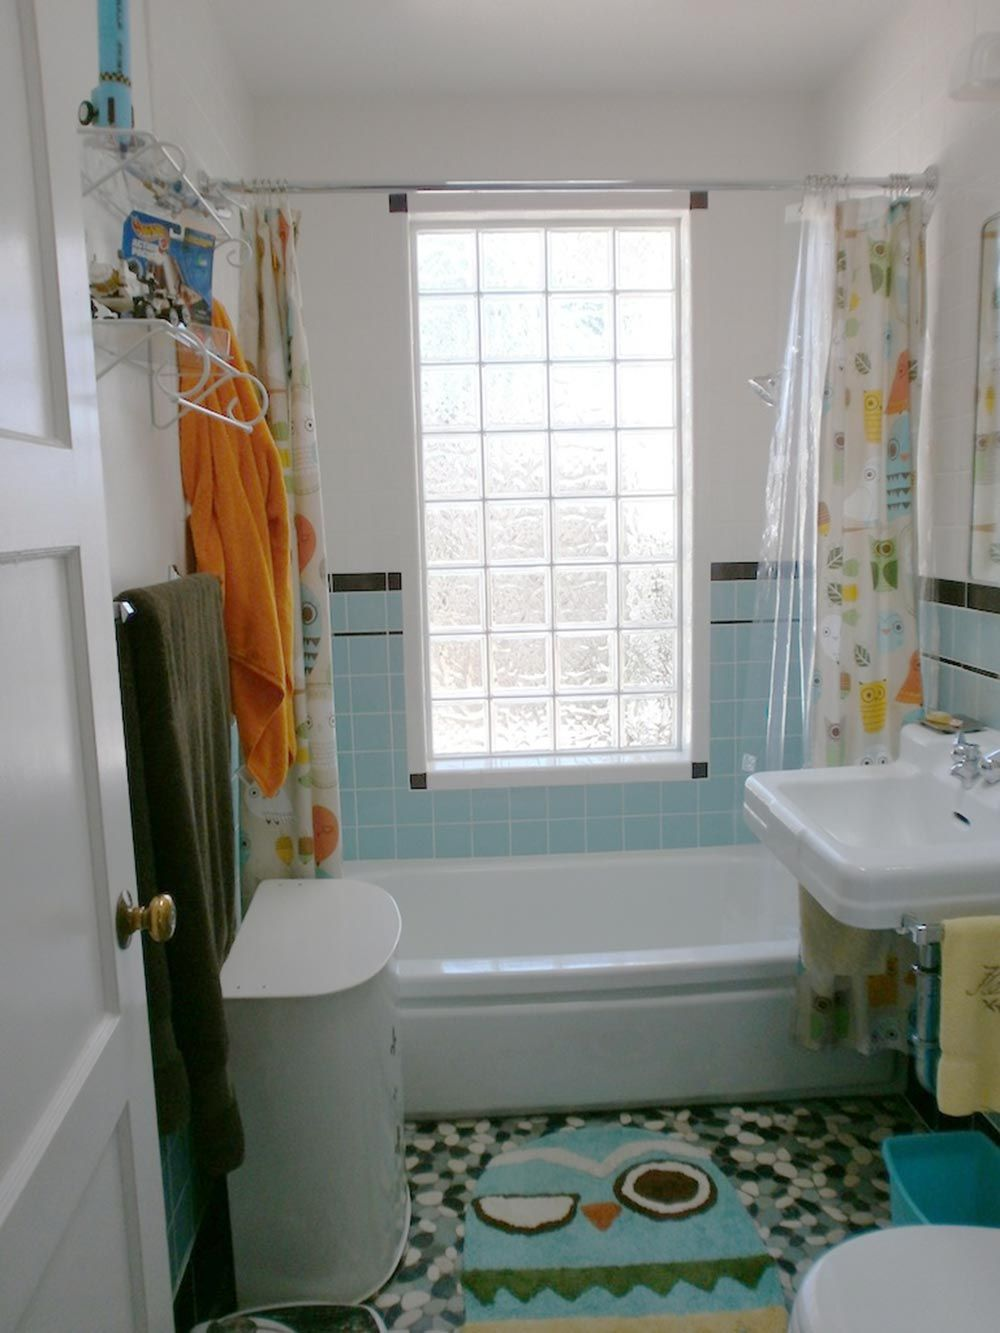 Cindy Waits 28 Years For Her Sunny Retro Bathroom Remodel In 2020 Retro Bathrooms Inexpensive Bathroom Remodel Cheap Bathroom Remodel